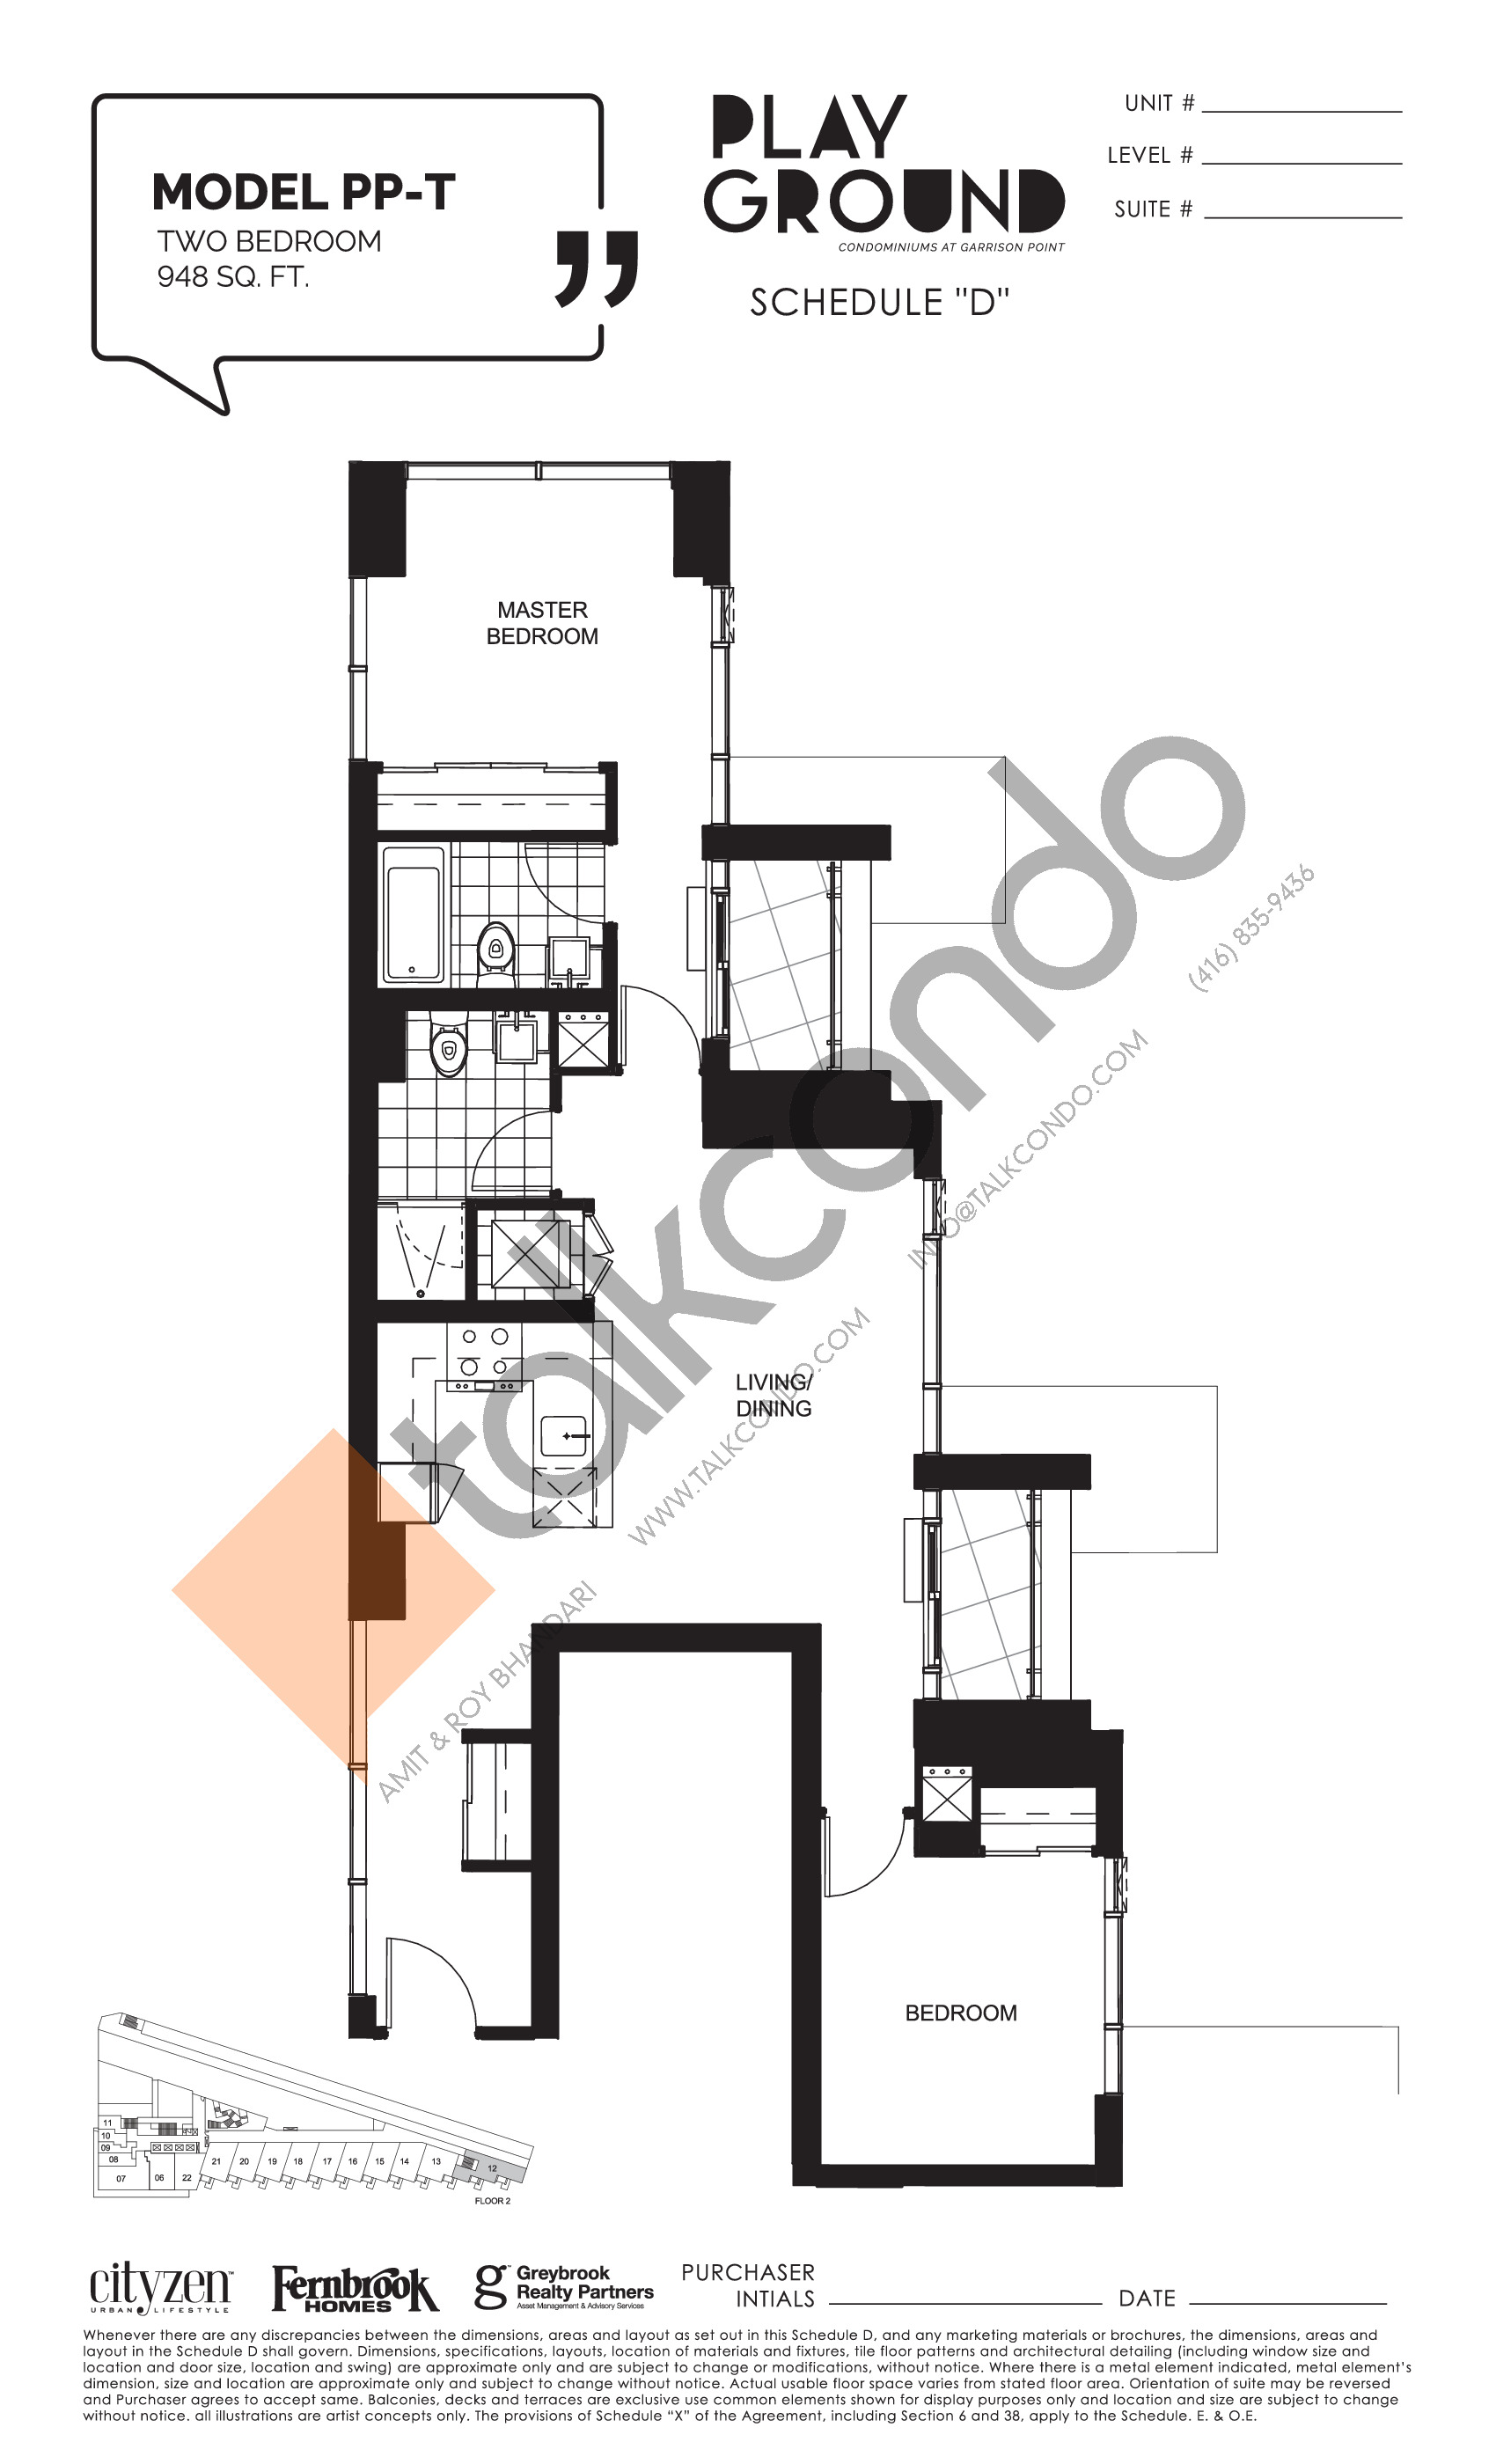 Model PP-T Floor Plan at Playground Condos at Garrison Point - 948 sq.ft